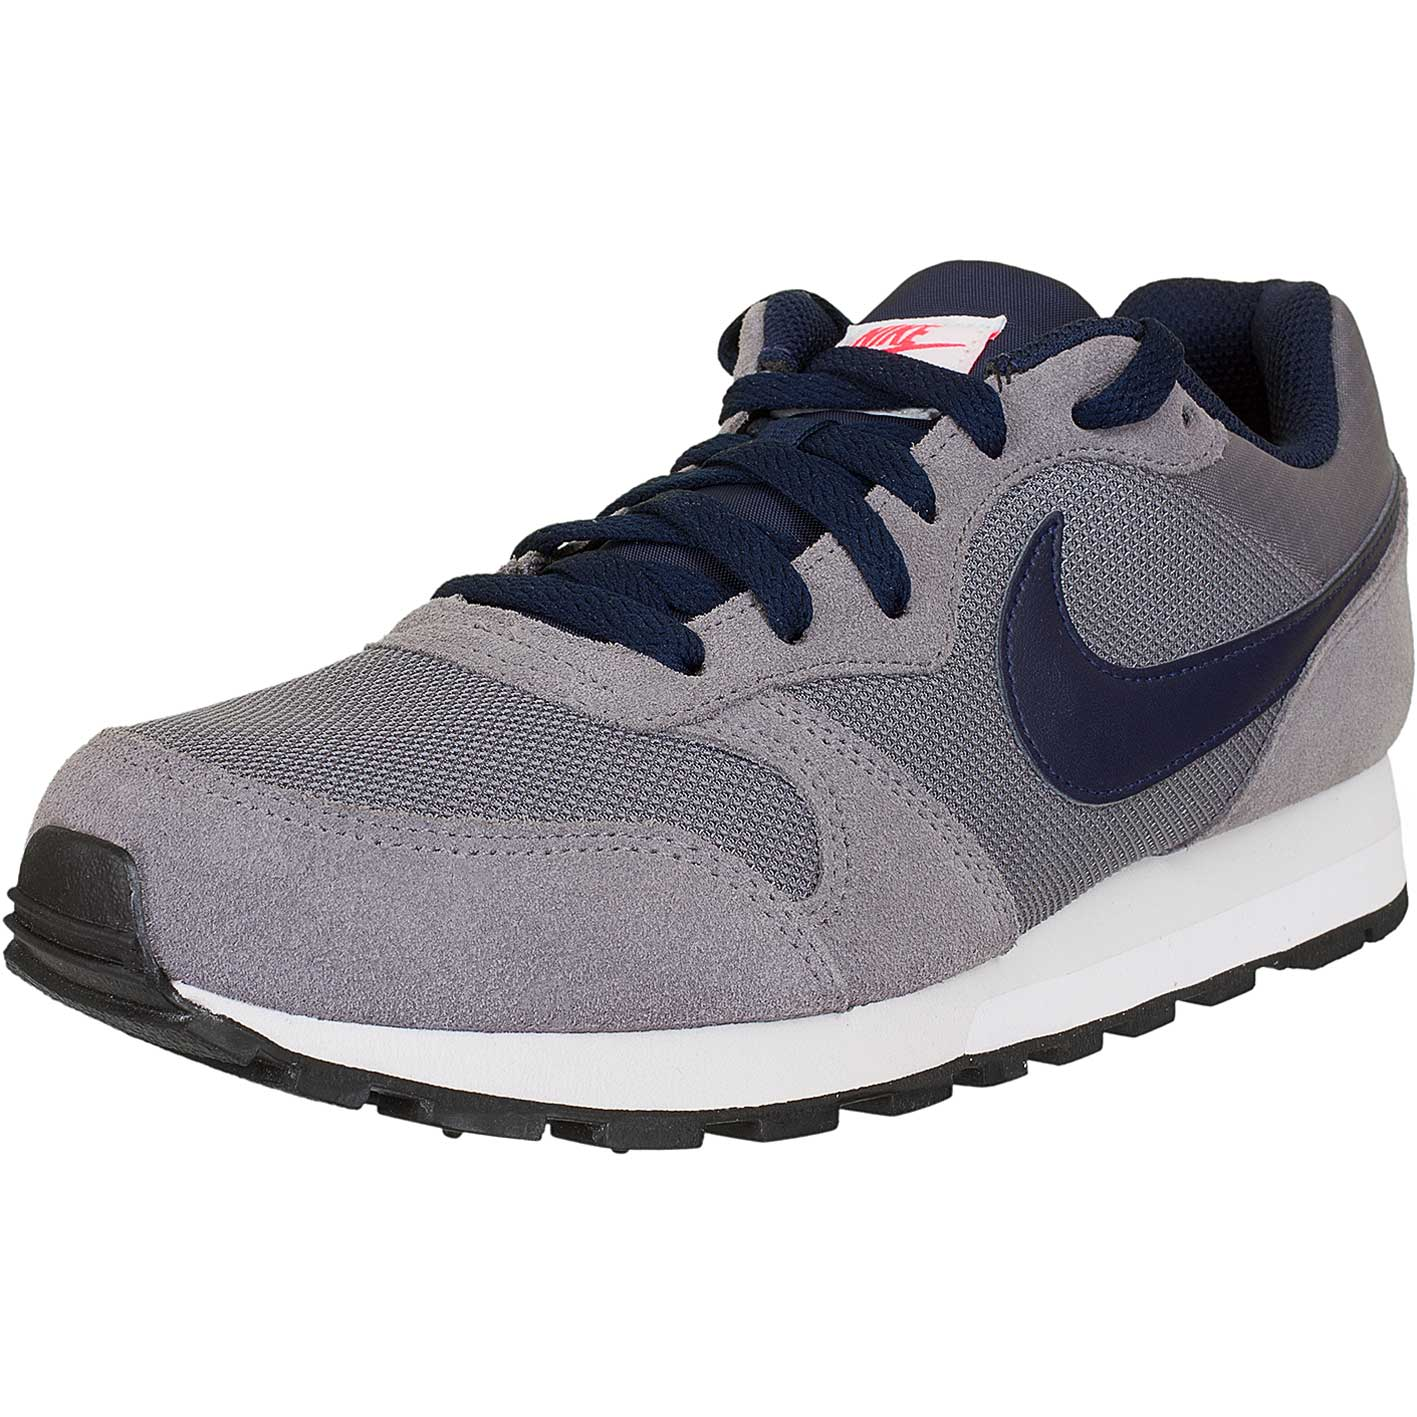 wholesale dealer 20a2f 07cb4 Nike Sneaker MD Runner 2 grau dunkelblau